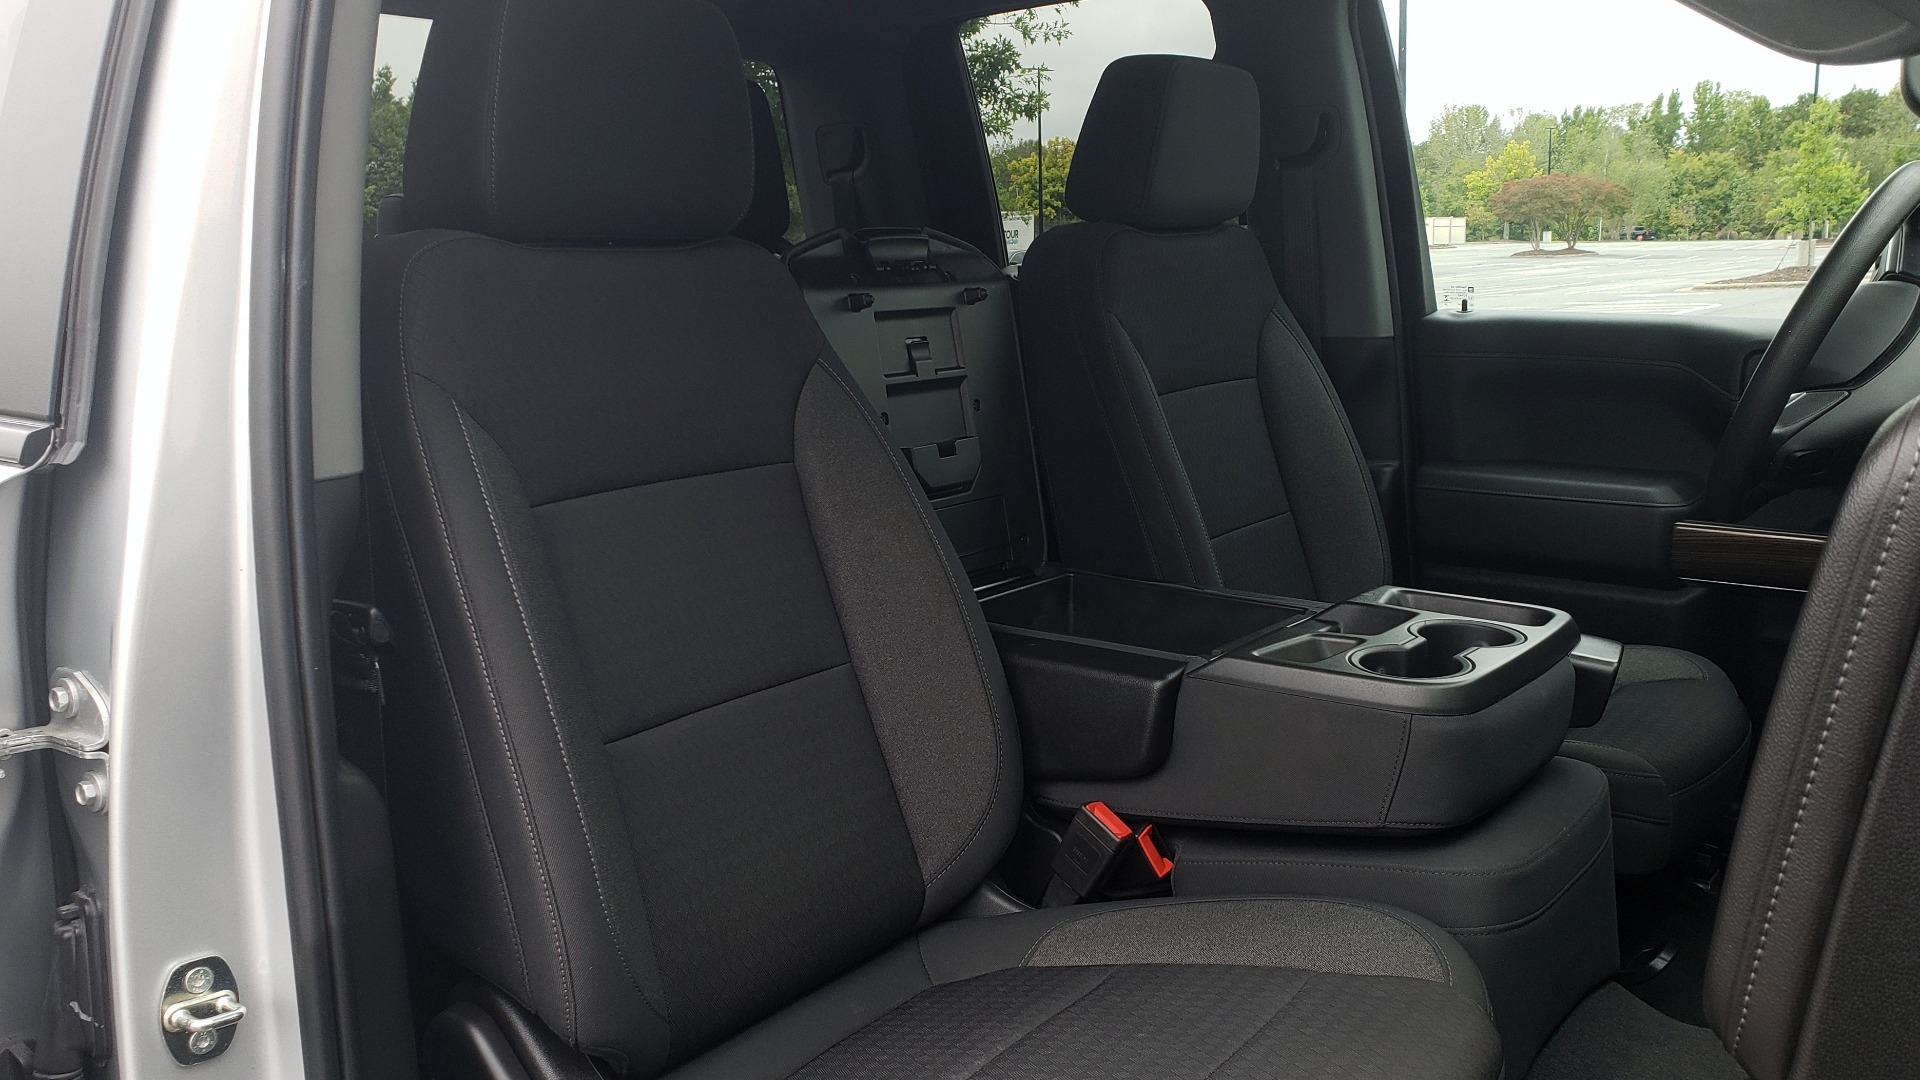 Used 2020 Chevrolet SILVERADO 1500 LT 4WD DOUBLECAB 147 WB / 5.3L V8 / BEDLINER / REARVIEW for sale $41,995 at Formula Imports in Charlotte NC 28227 60